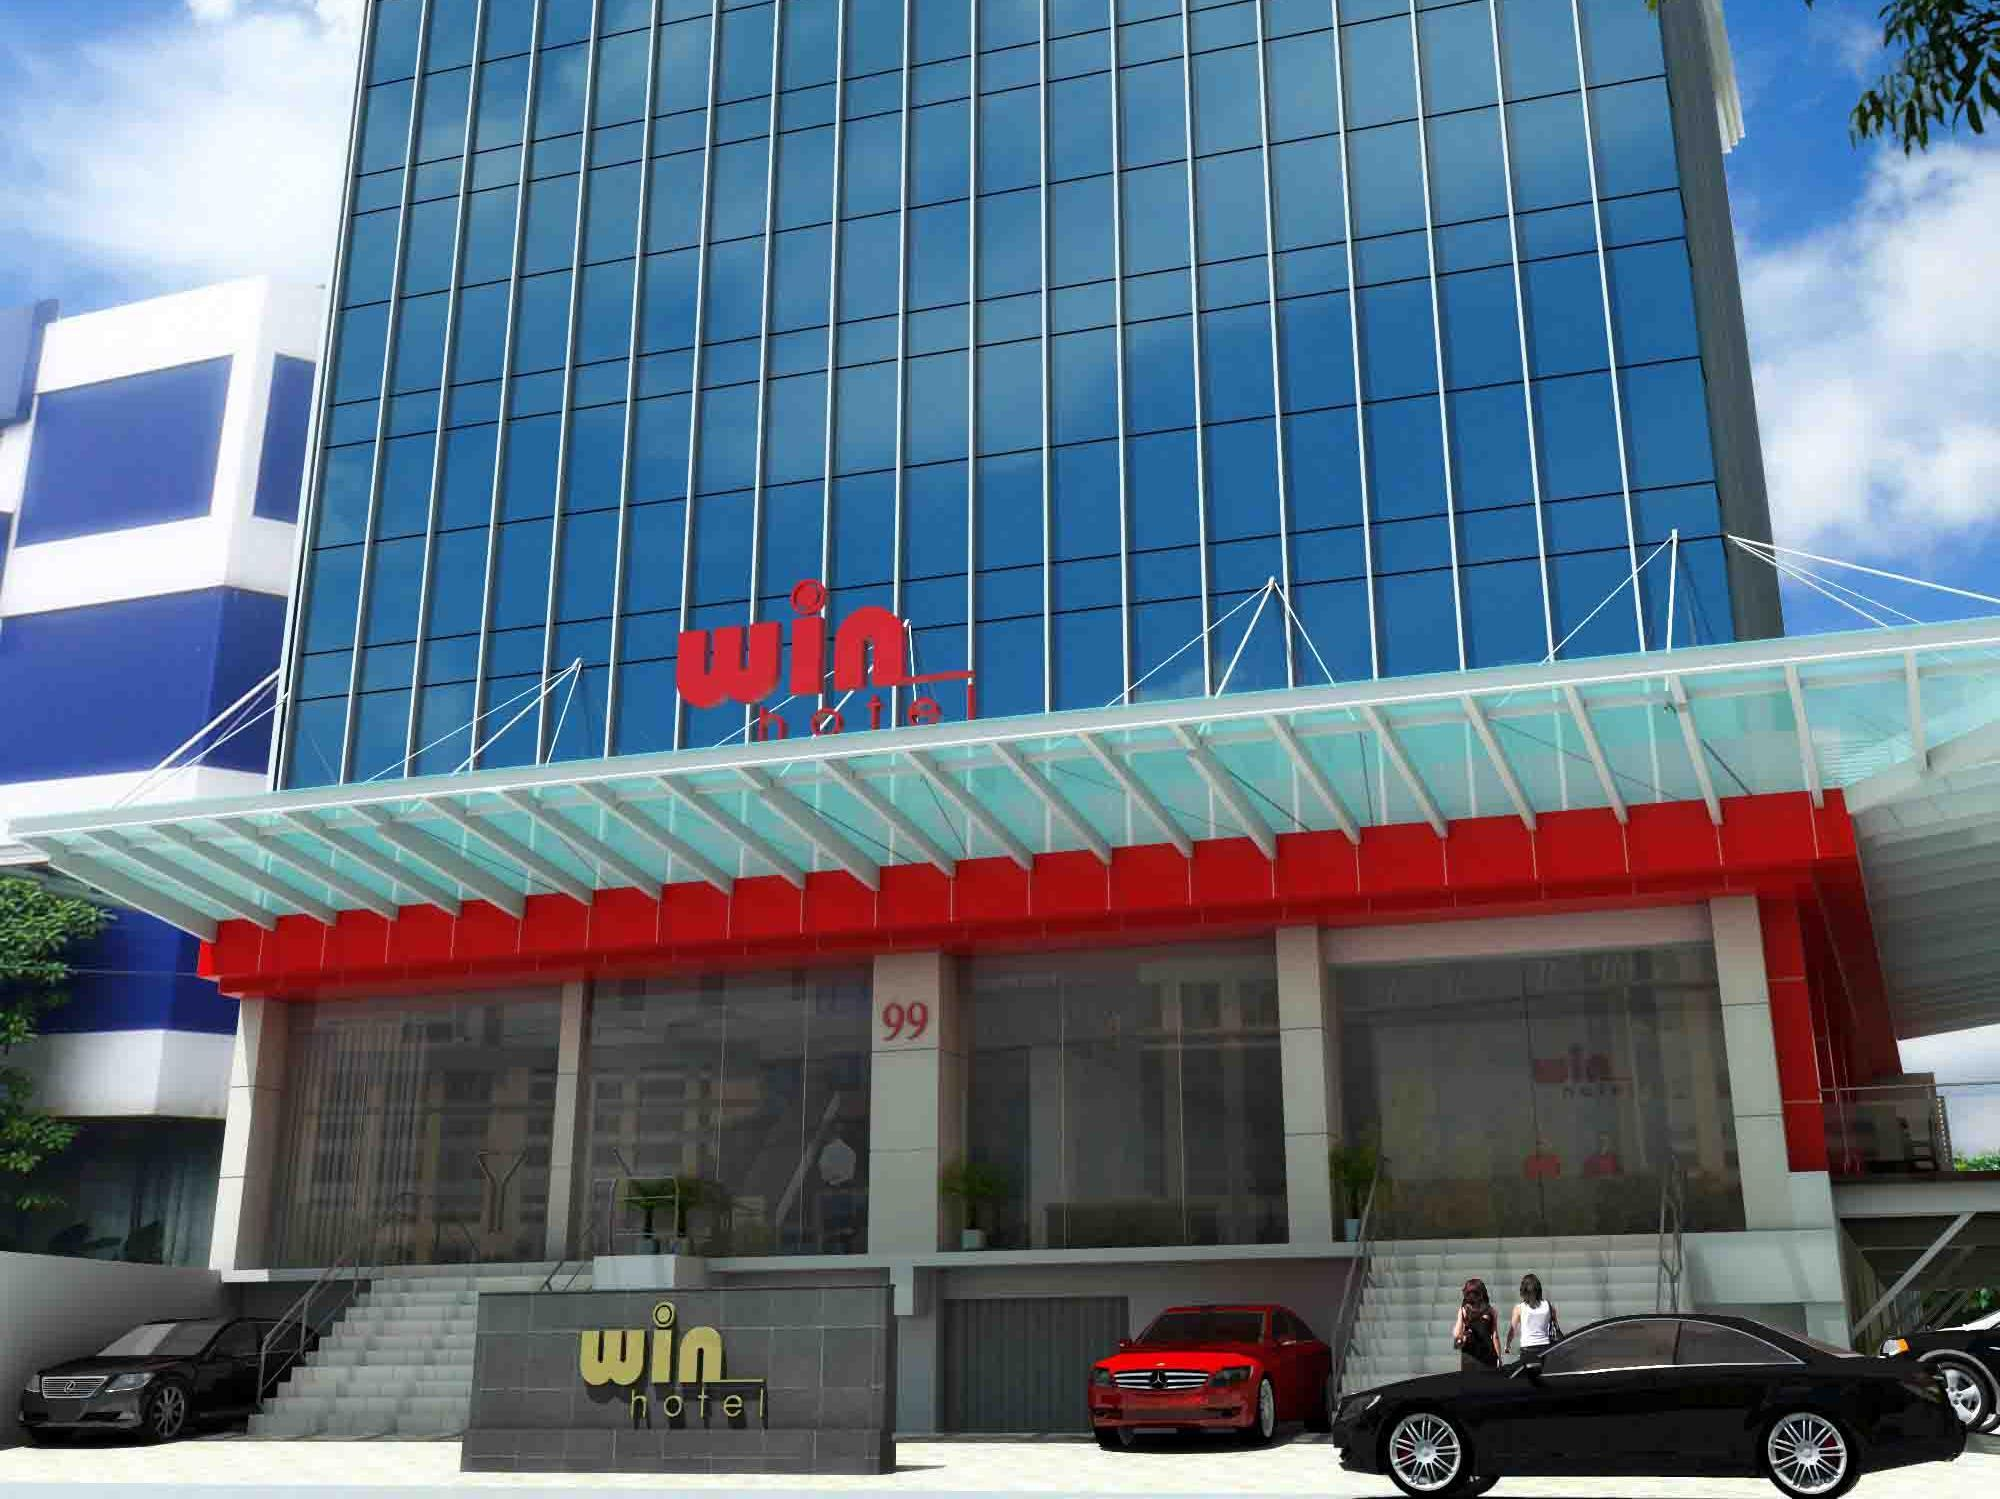 Win Hotel Blok M - Panglima Polim 99 - Hotels and Accommodation in Indonesia, Asia